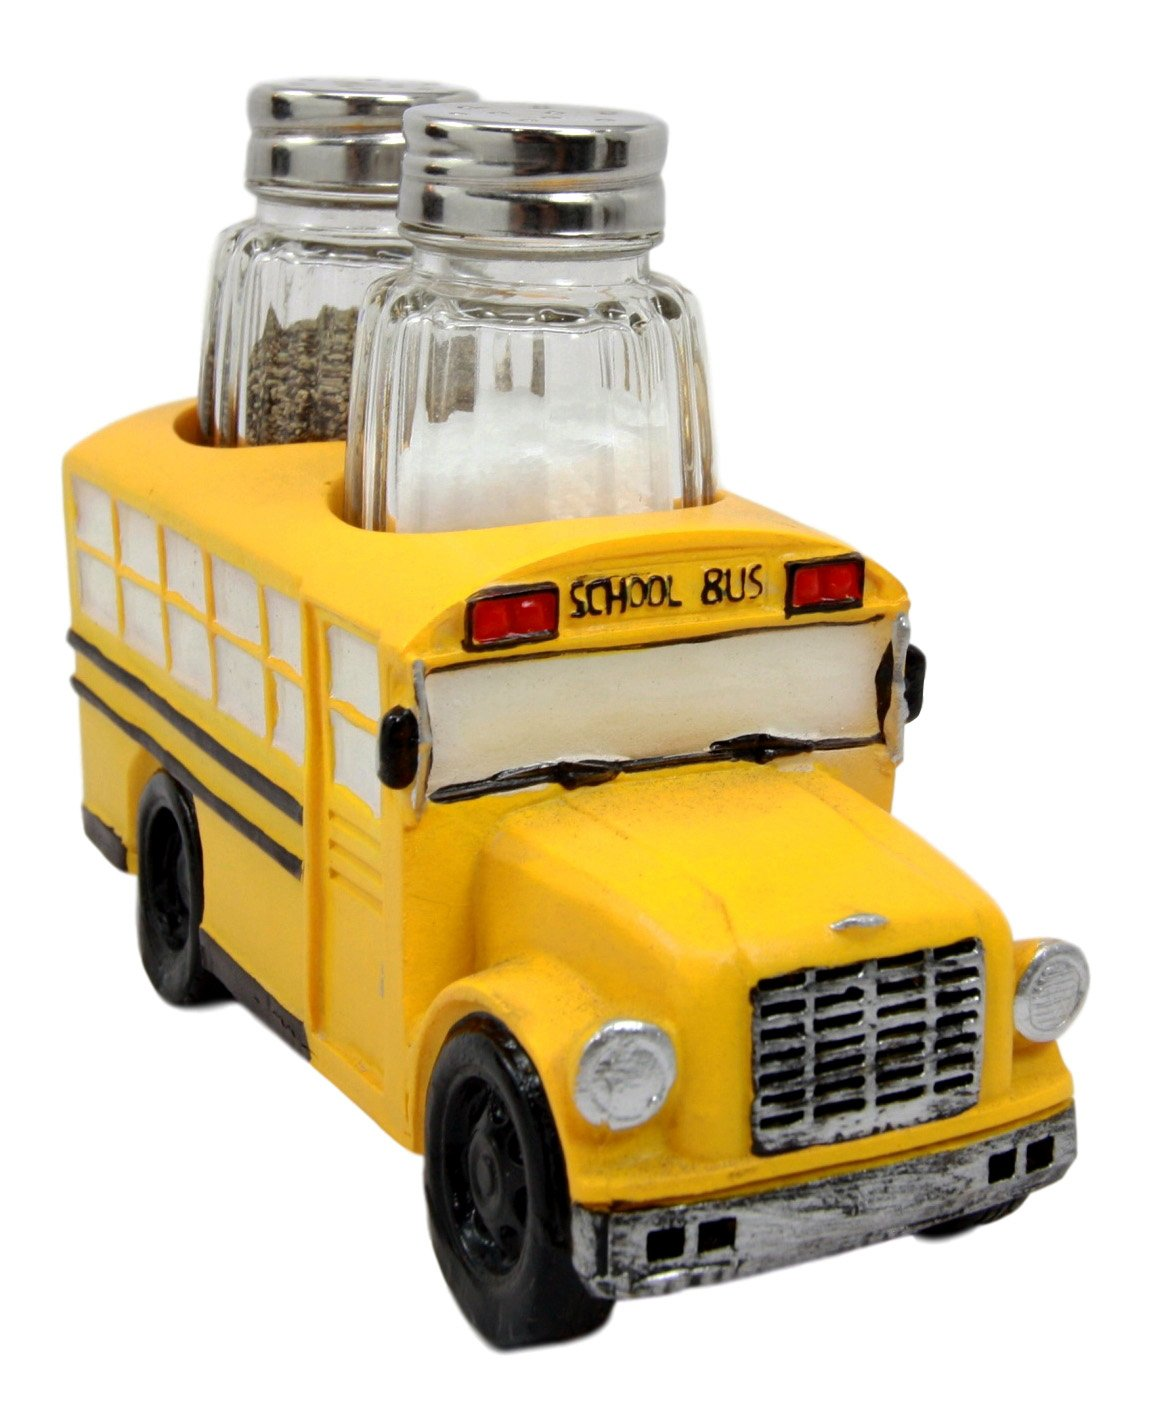 Atlantic Collectibles North American Yellow School Bus Decorative Glass Salt Pepper Shakers Holder Resin Figurine 6''L